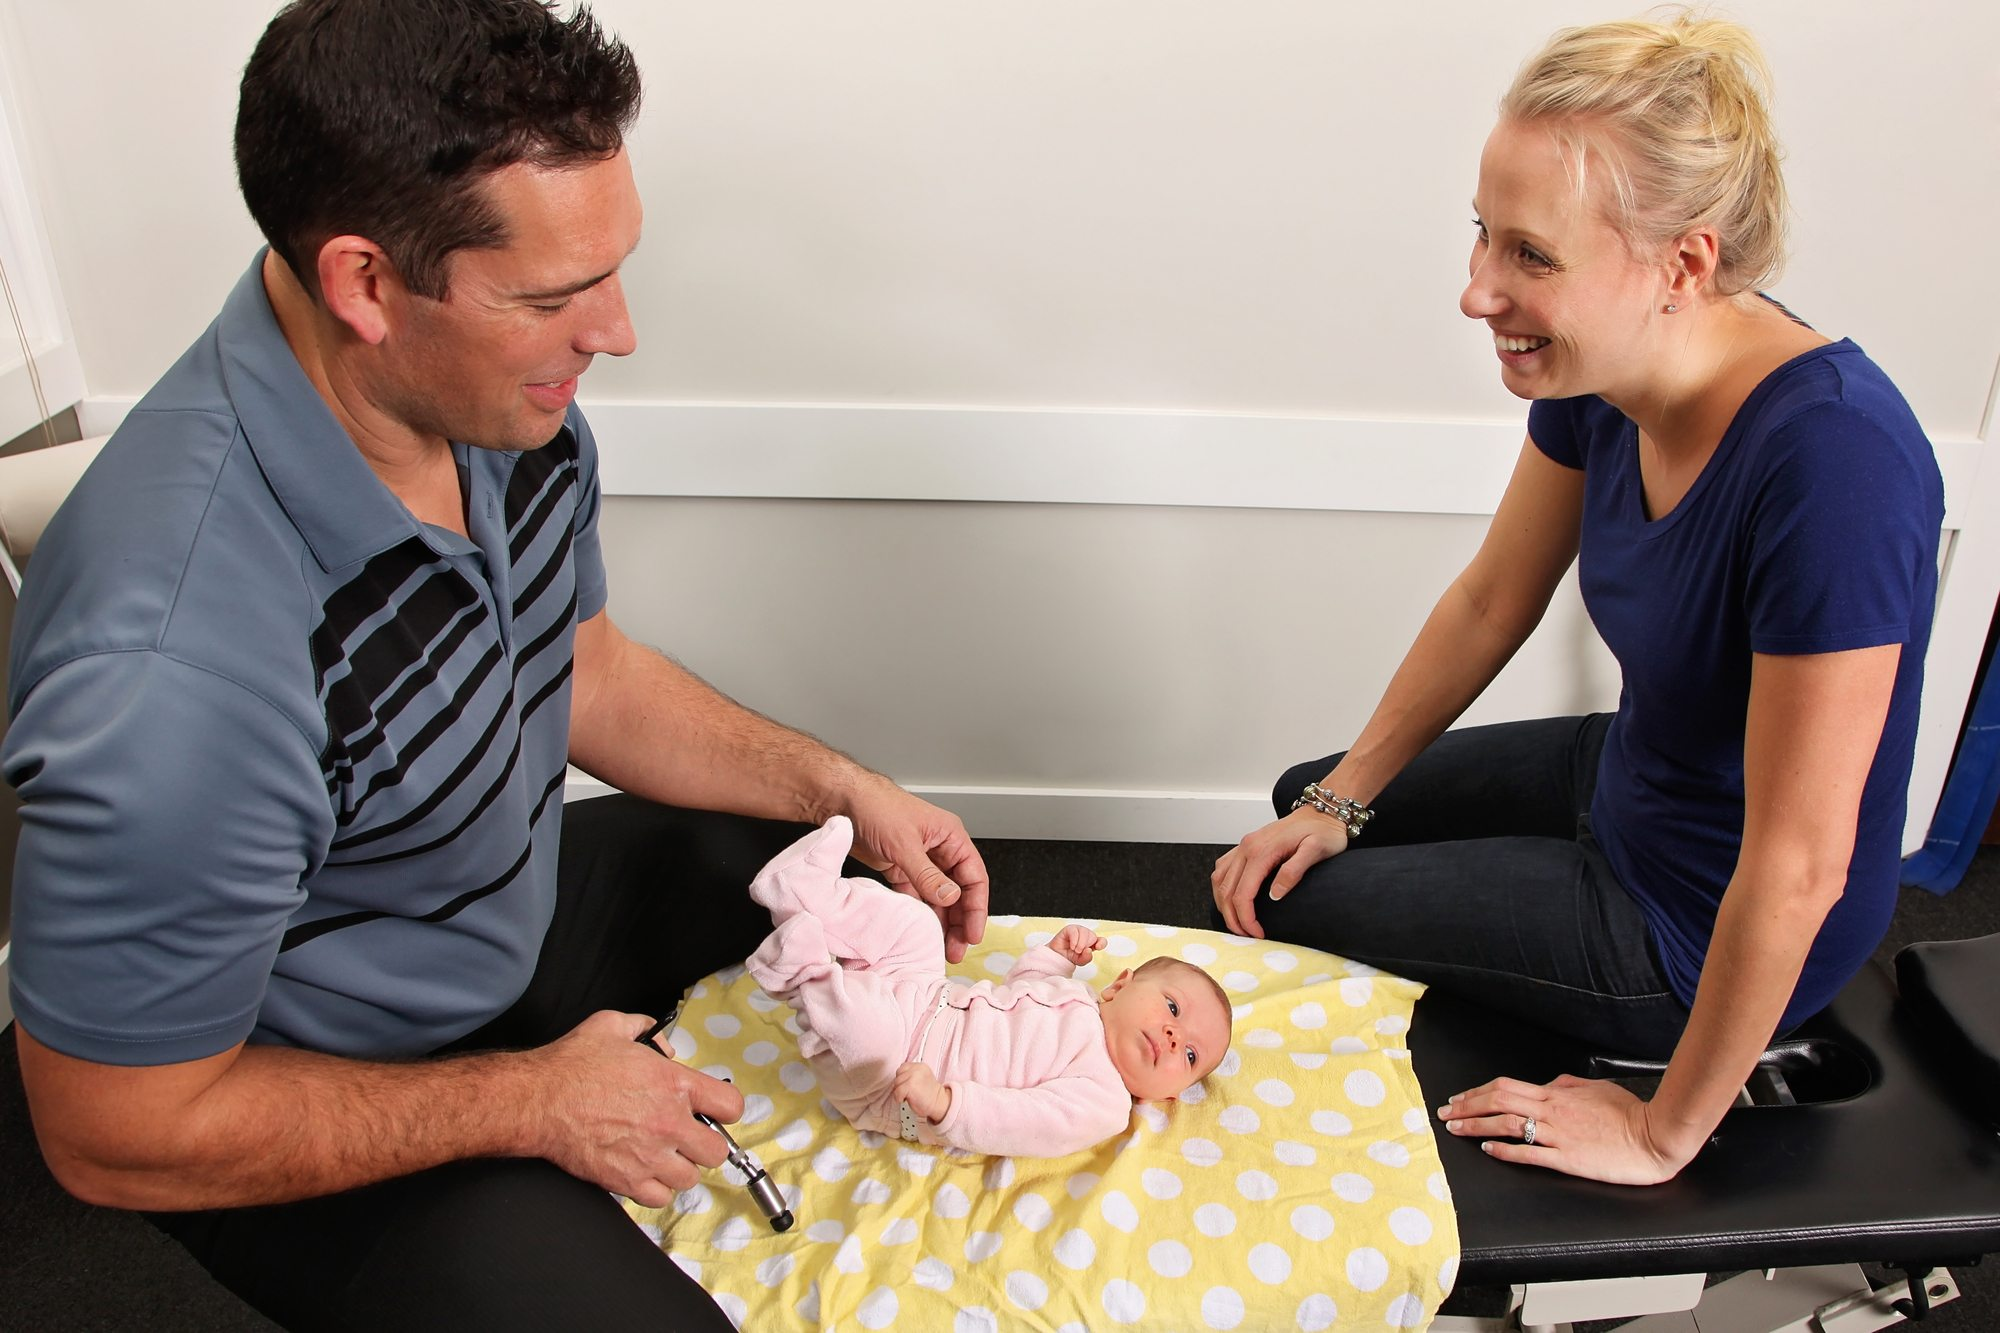 3 Myths About Chiropractic Care for Children